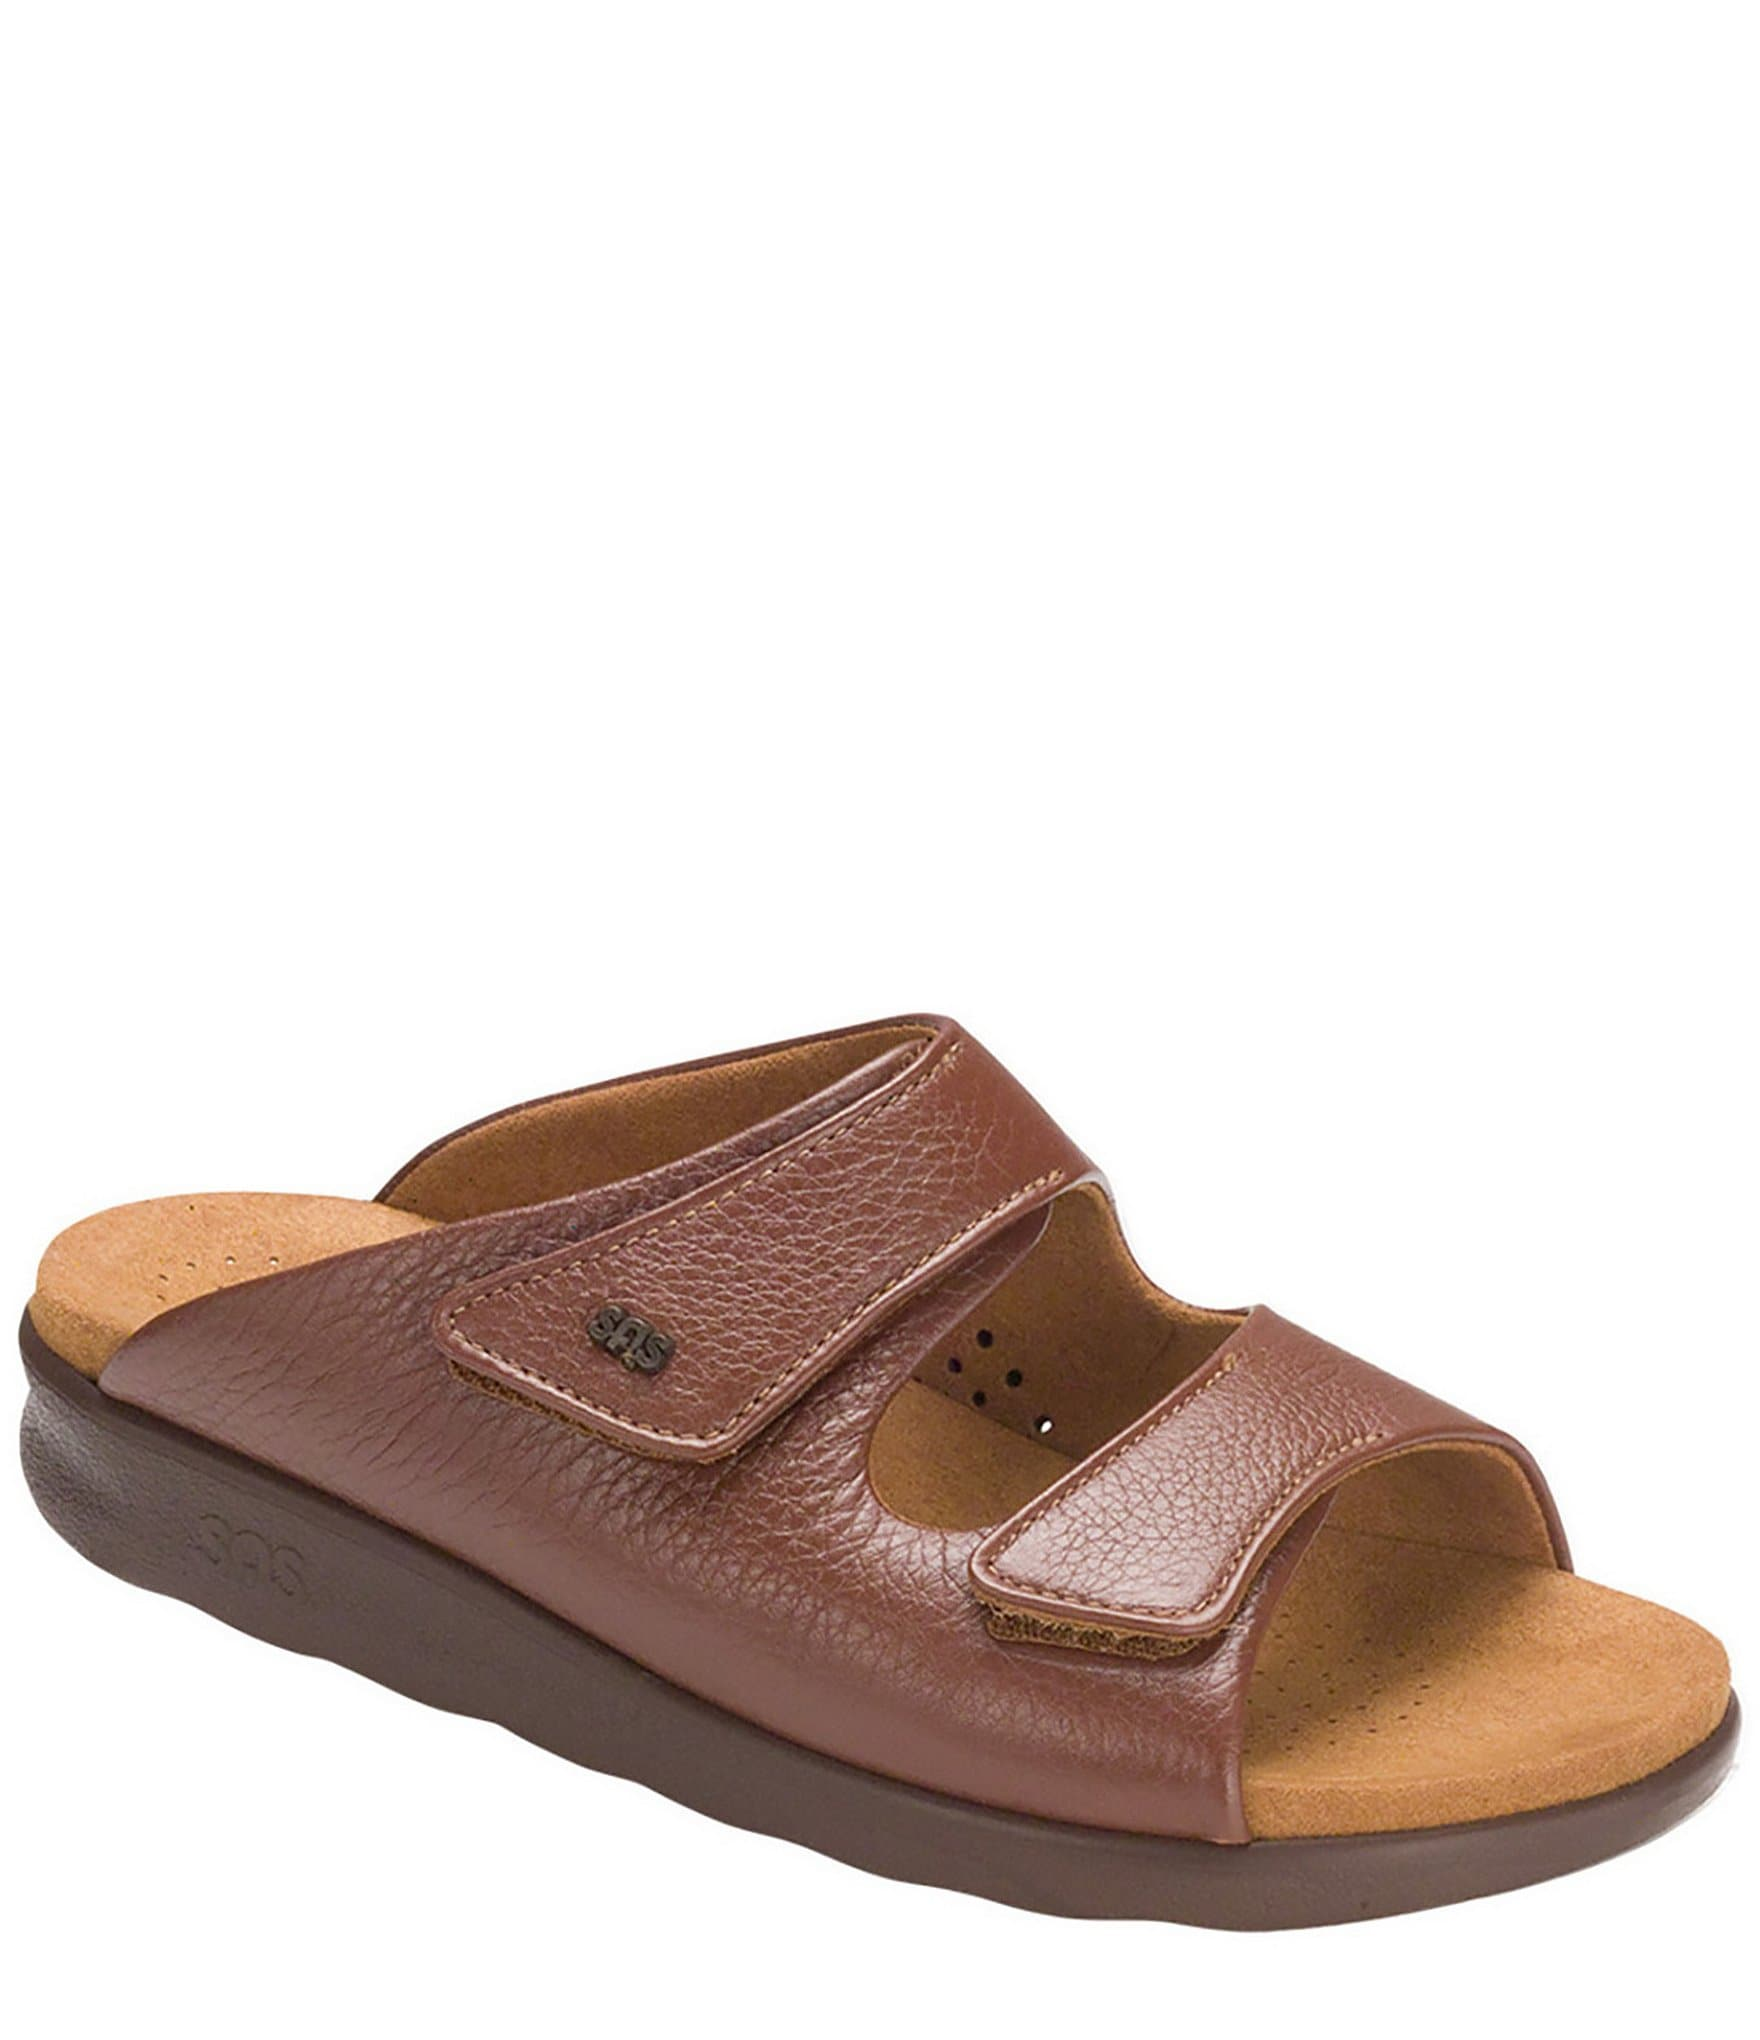 SAS Women's Extra Wide Width Shoes